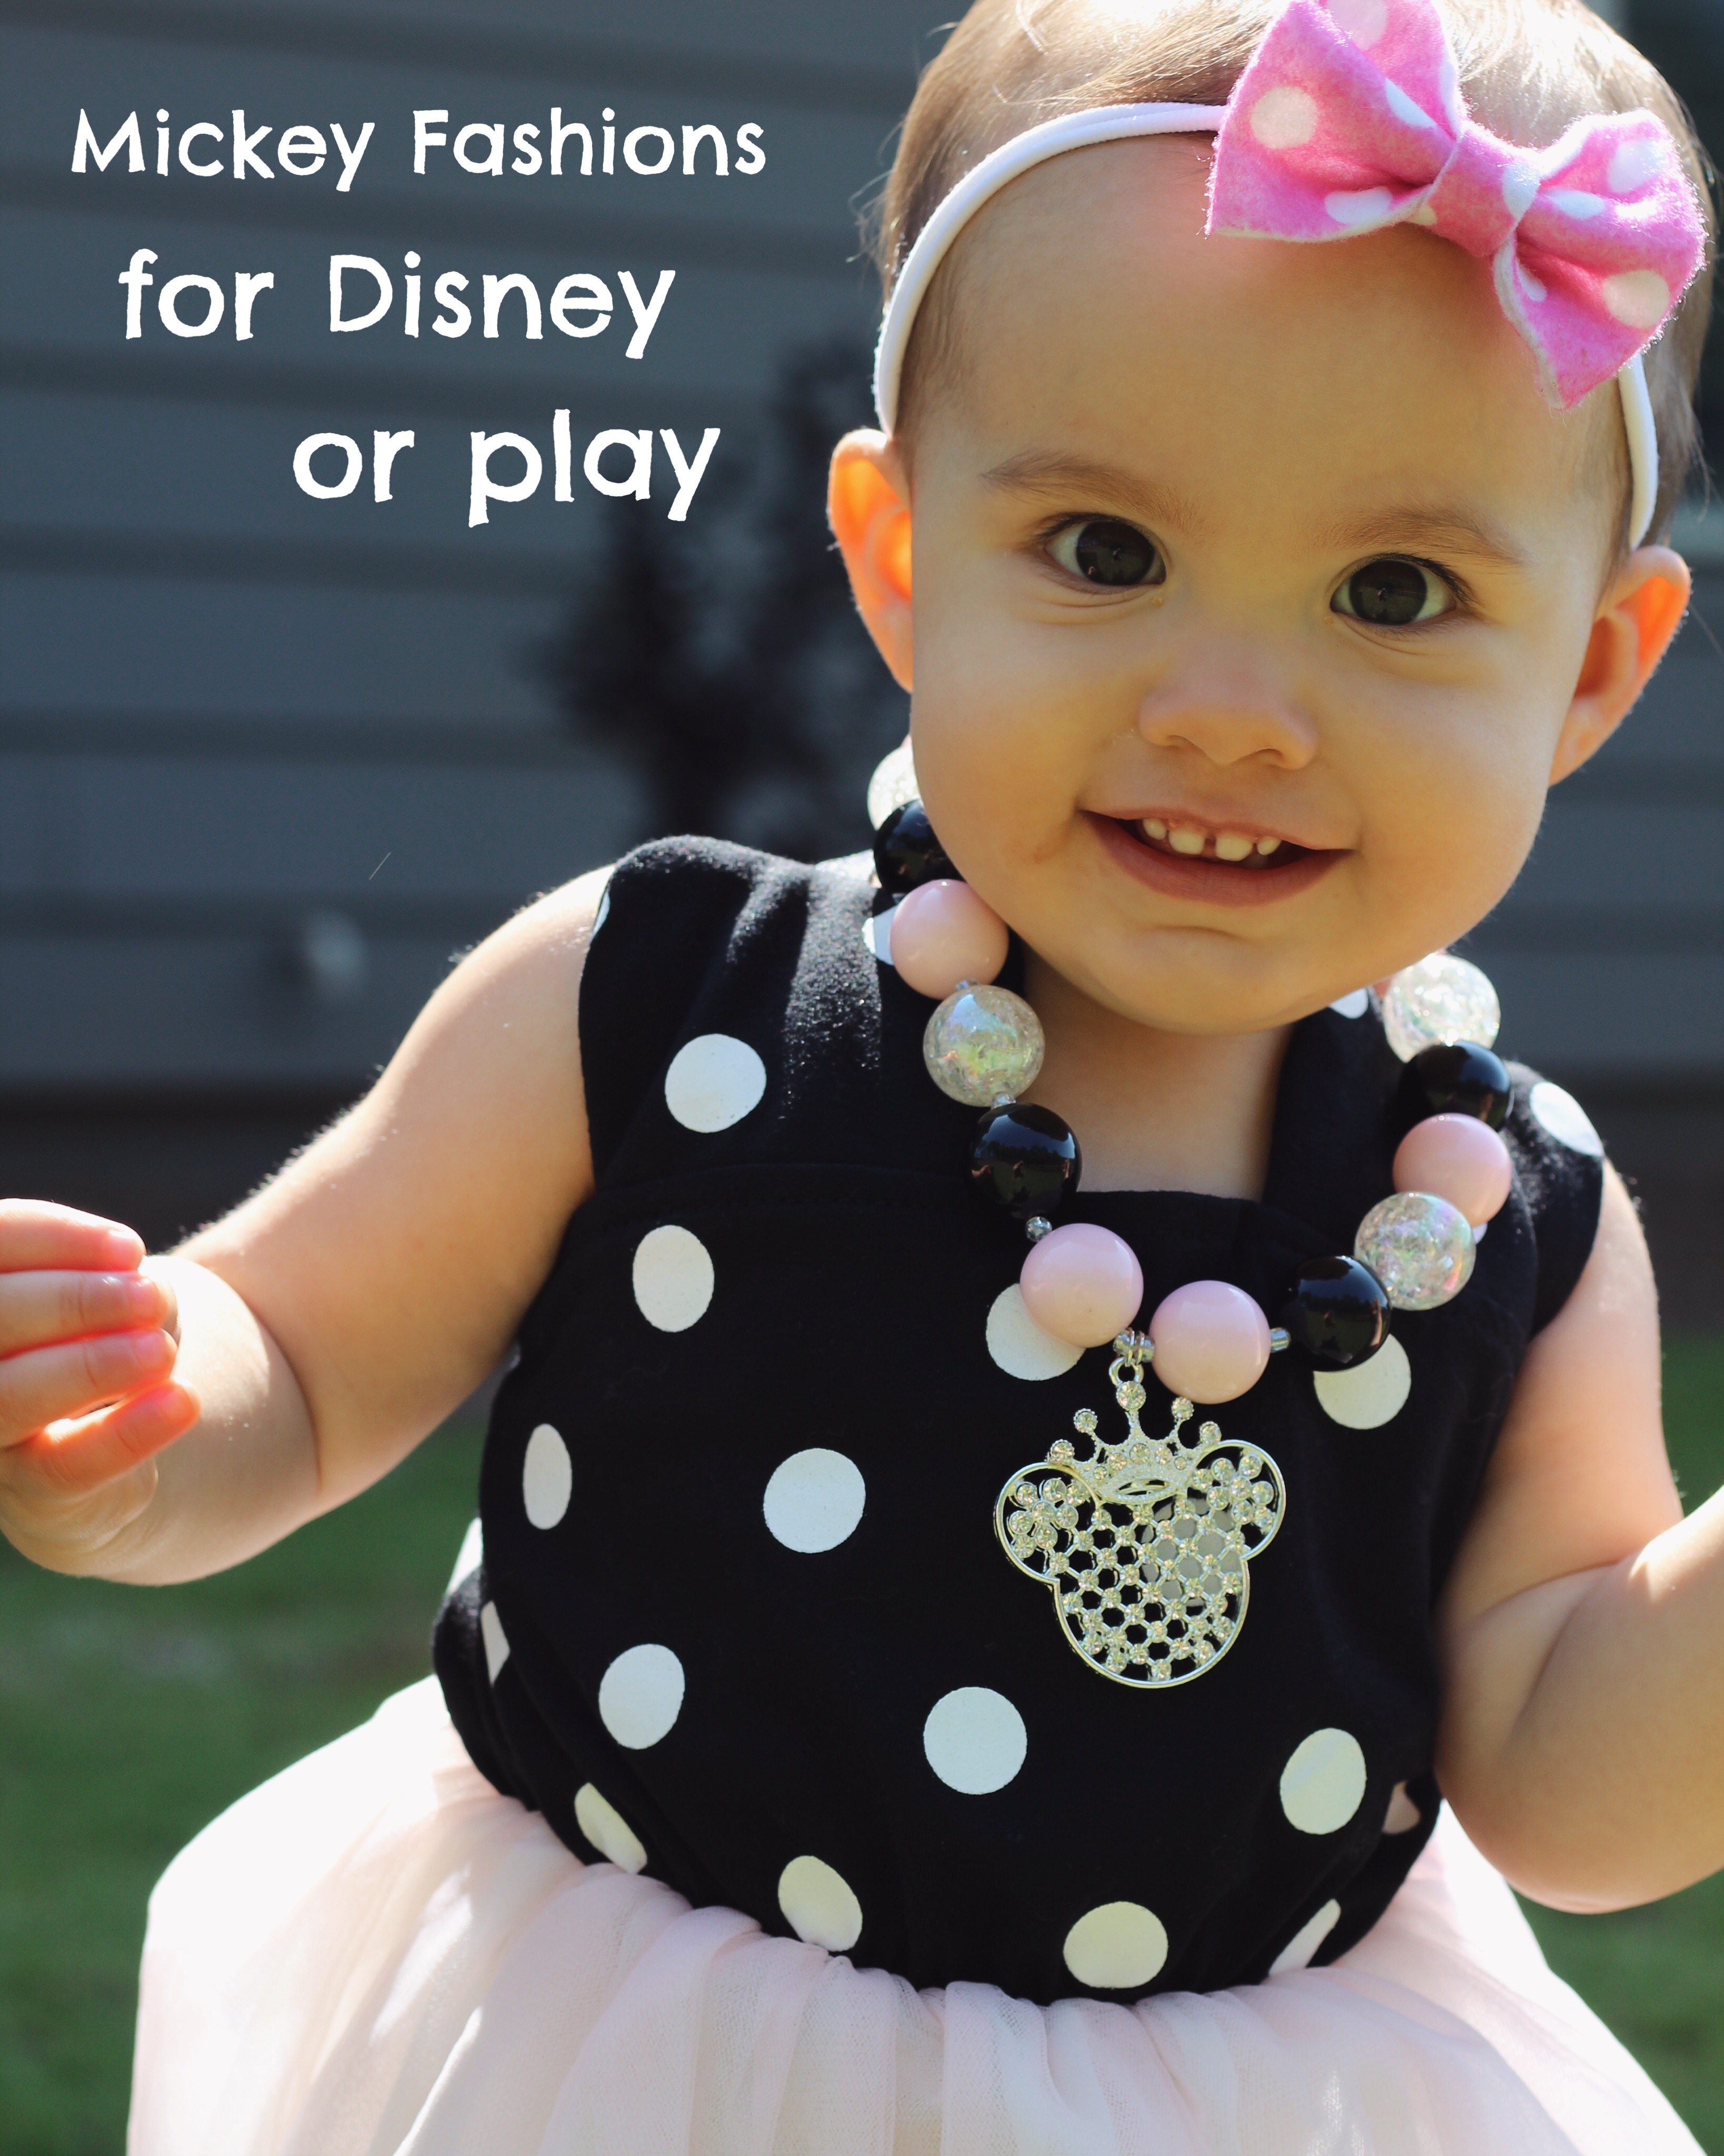 Mickey Fashions for Disney or play